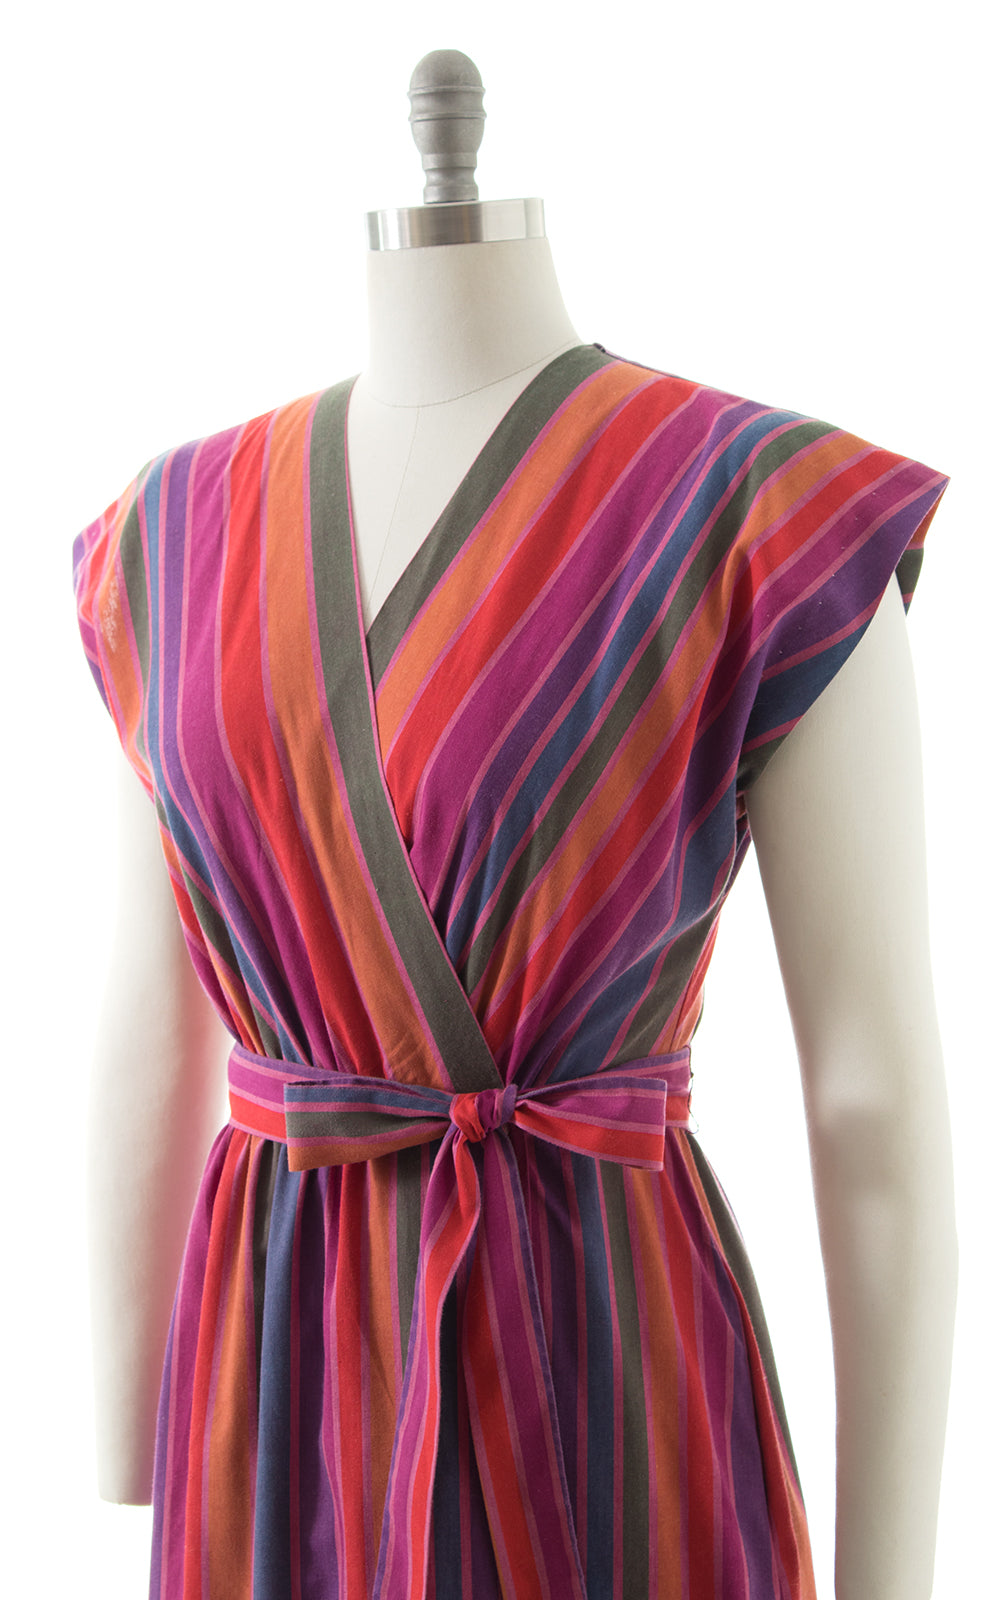 1970s Rainbow Striped Cotton Wrap Dress BirthdayLifeVintage